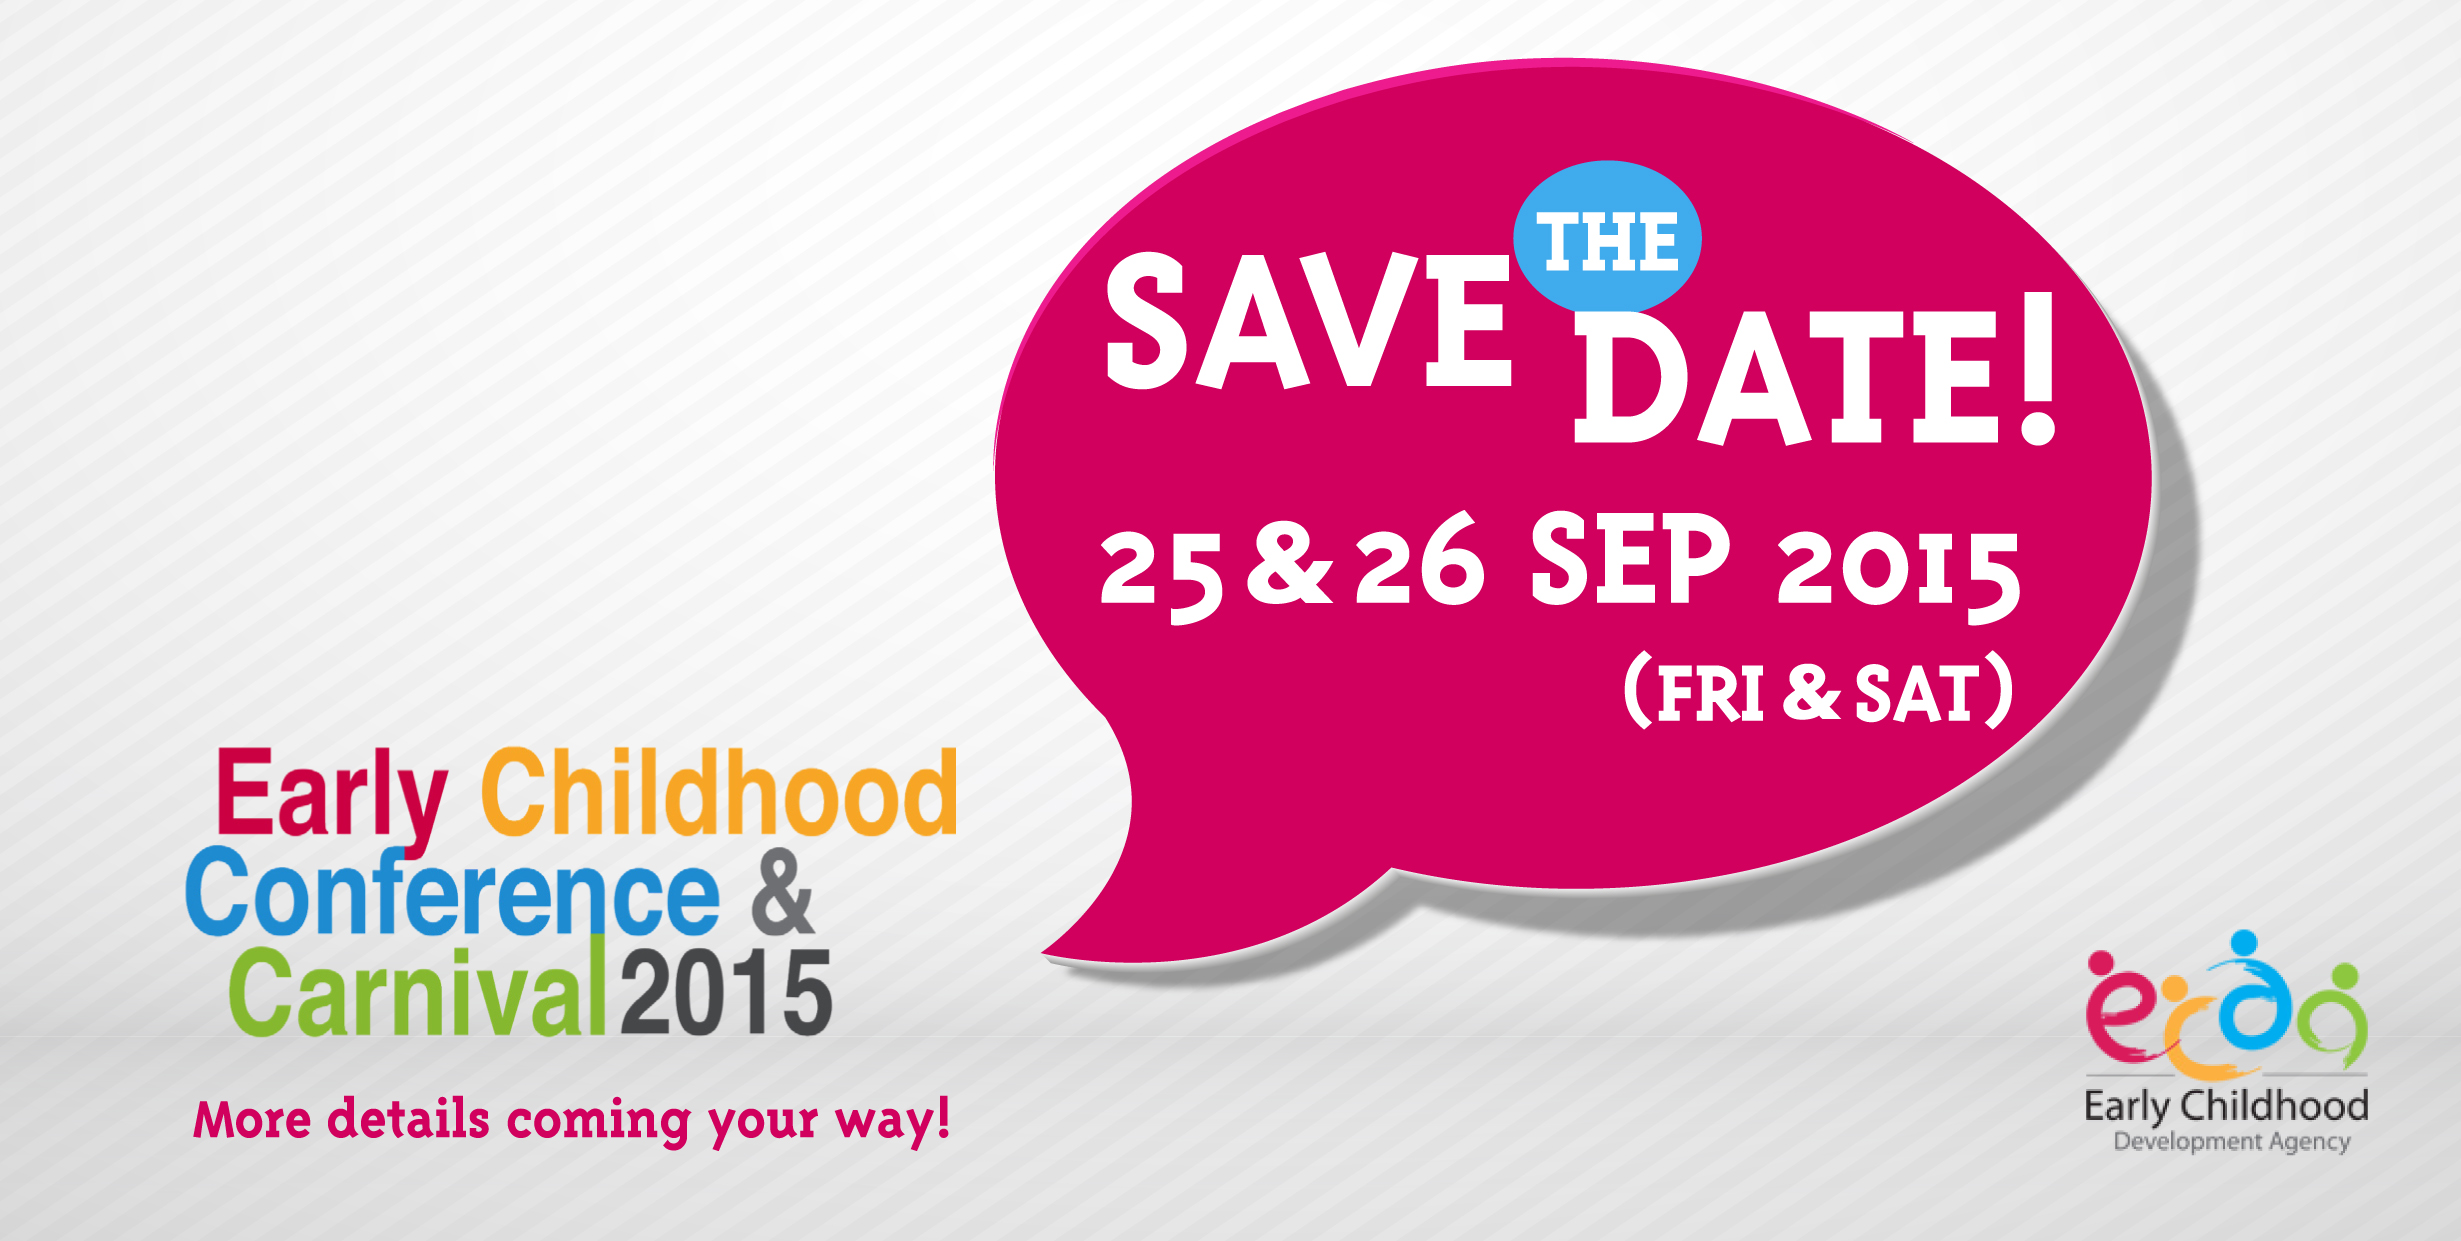 Early Childhood Conference and Carnival 2015 (ECCC2015)